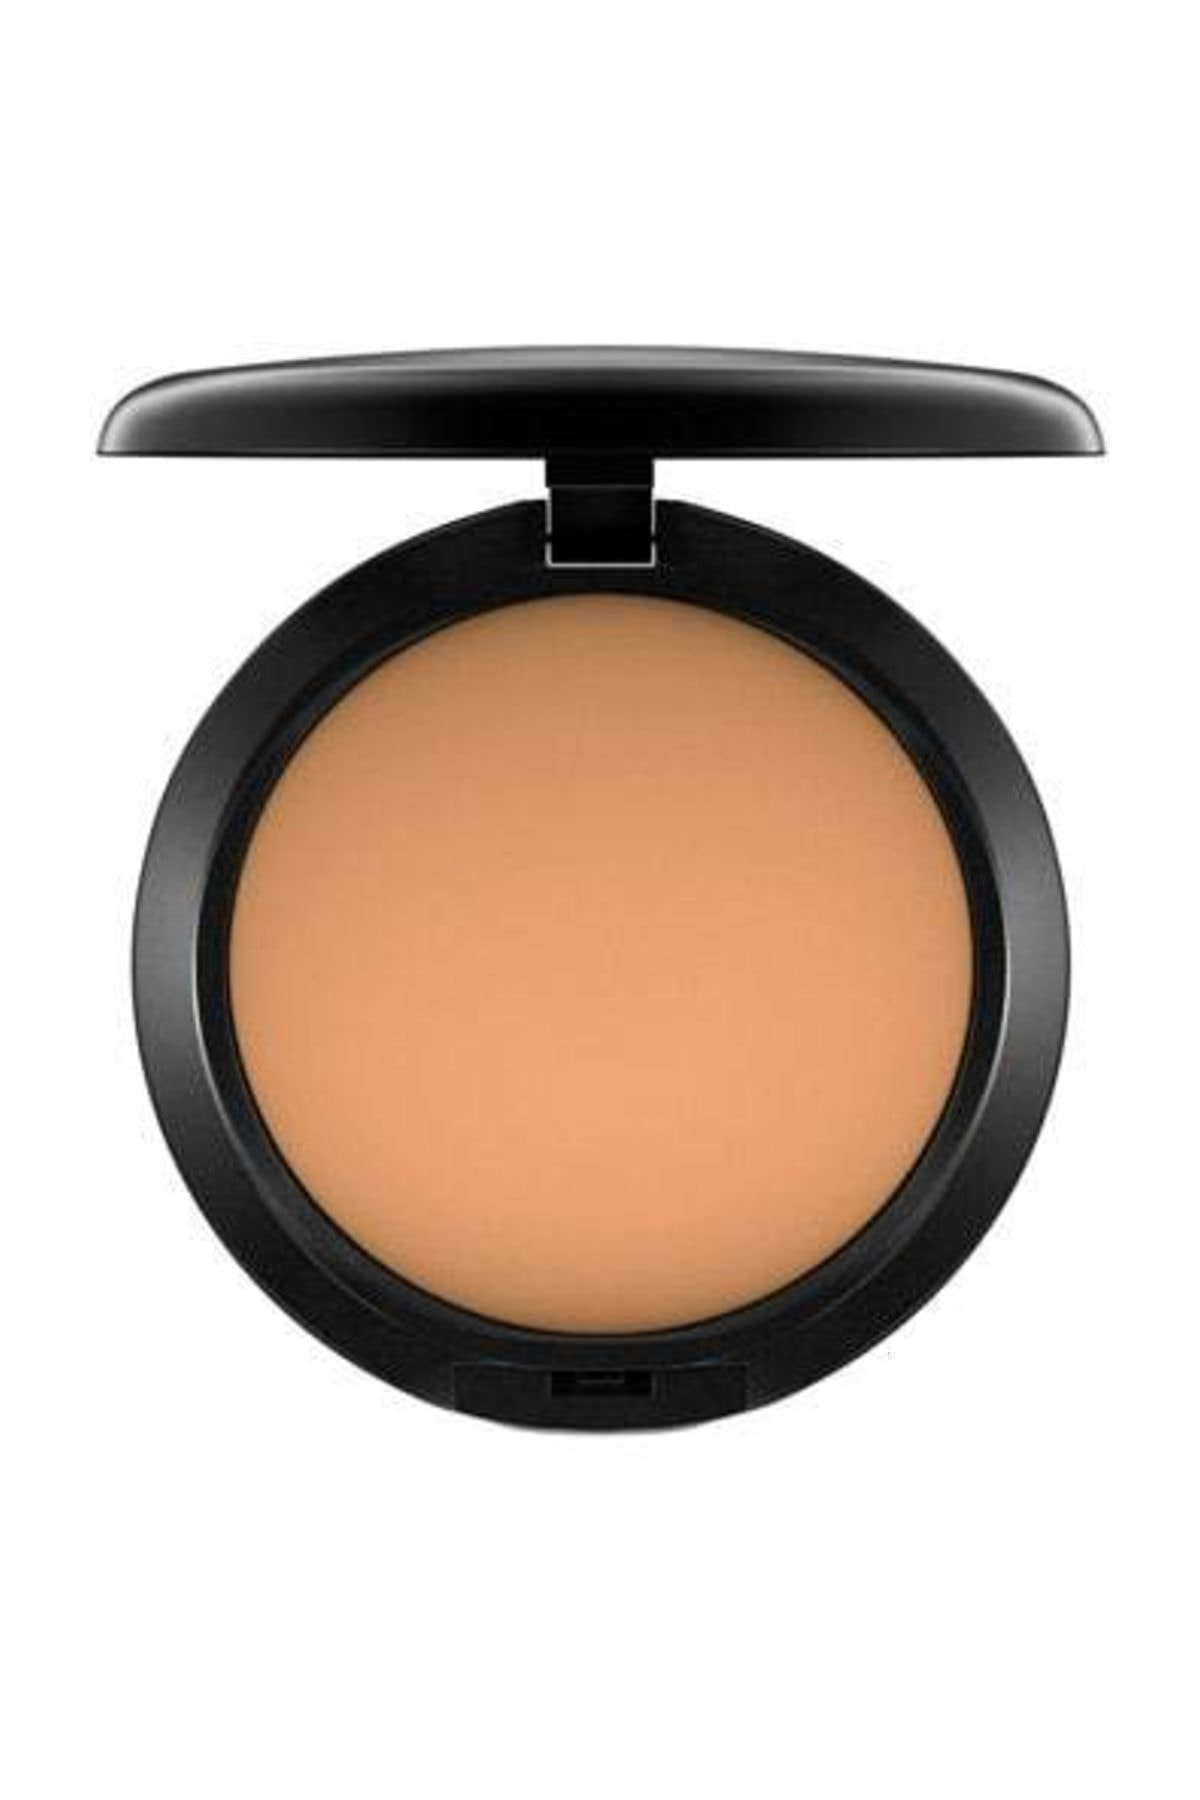 M.A.C Pudra Fondöten - Studio Fix Powder Plus Foundation N9 15 g 773602047932 1